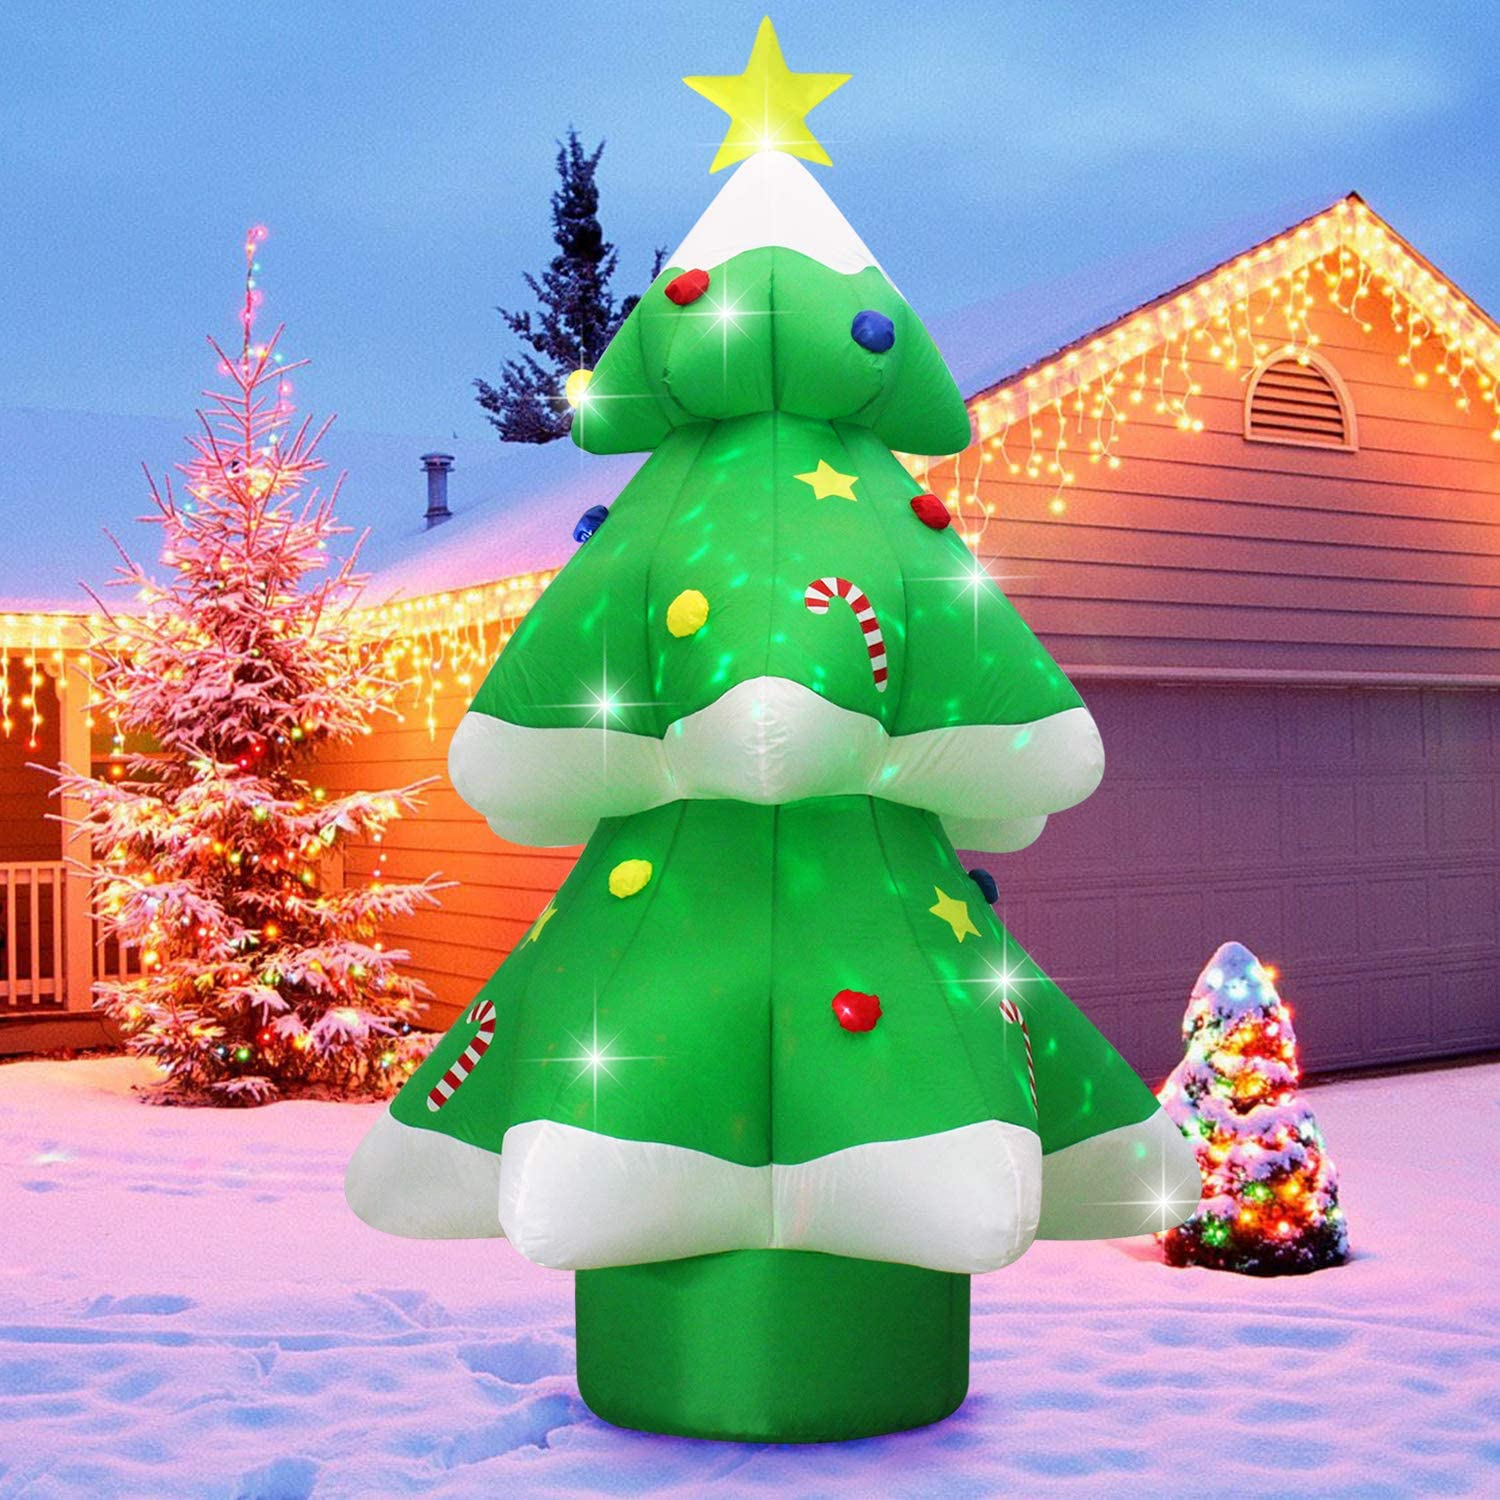 Fanshunlite Christmas Inflatable 9FT LED Color Changing Christmas Tree Lighted Blow-Up Yard Party Decoration Xmas Airblown Inflatable Outdoor Indoor Home Garden Family Prop Yard